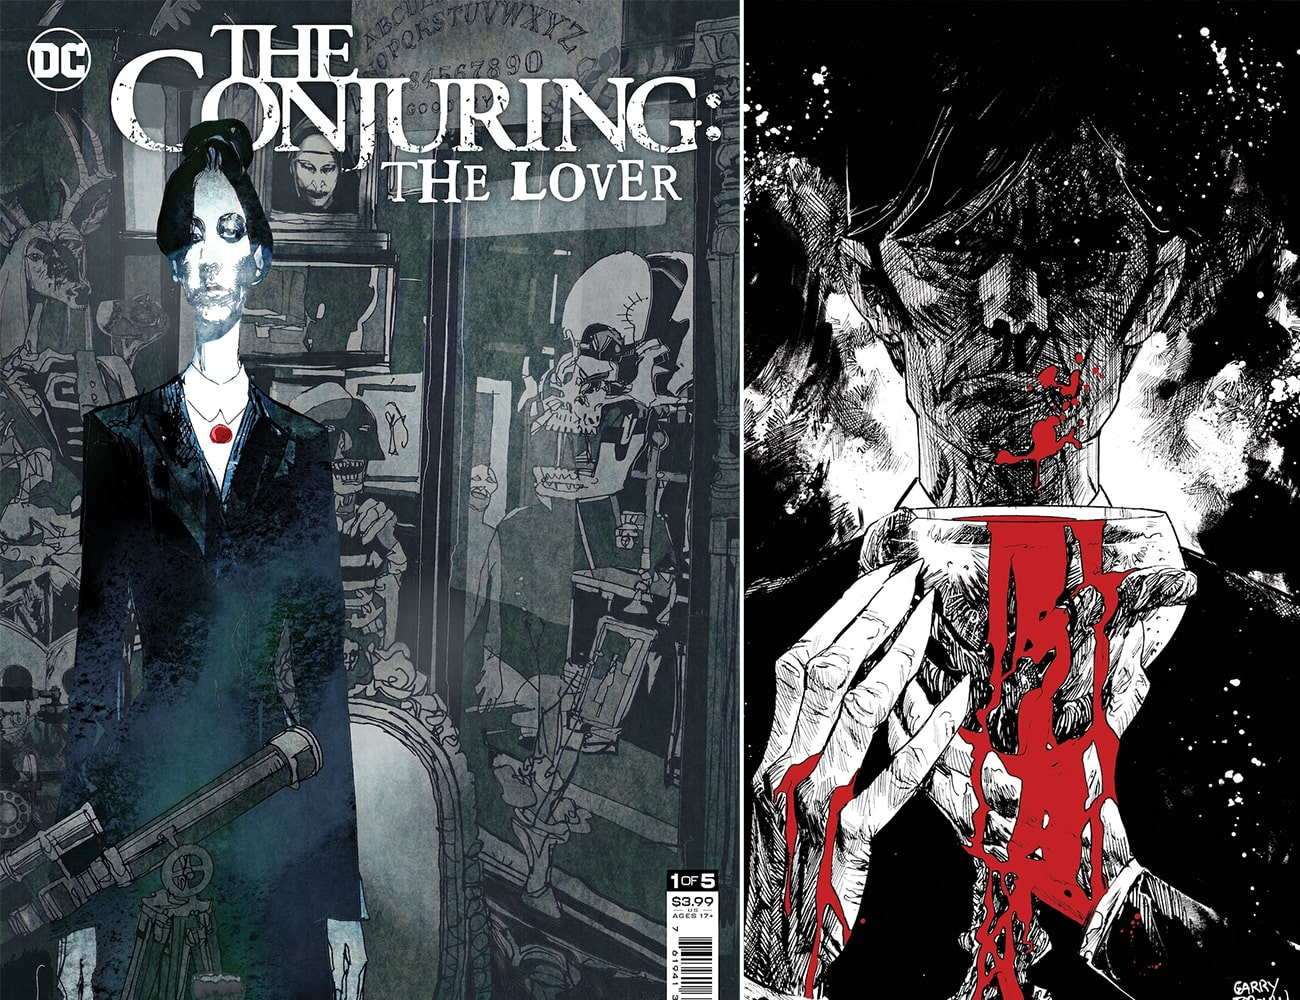 DC Comics launching horror imprint with 'The Conjuring: The Lover'